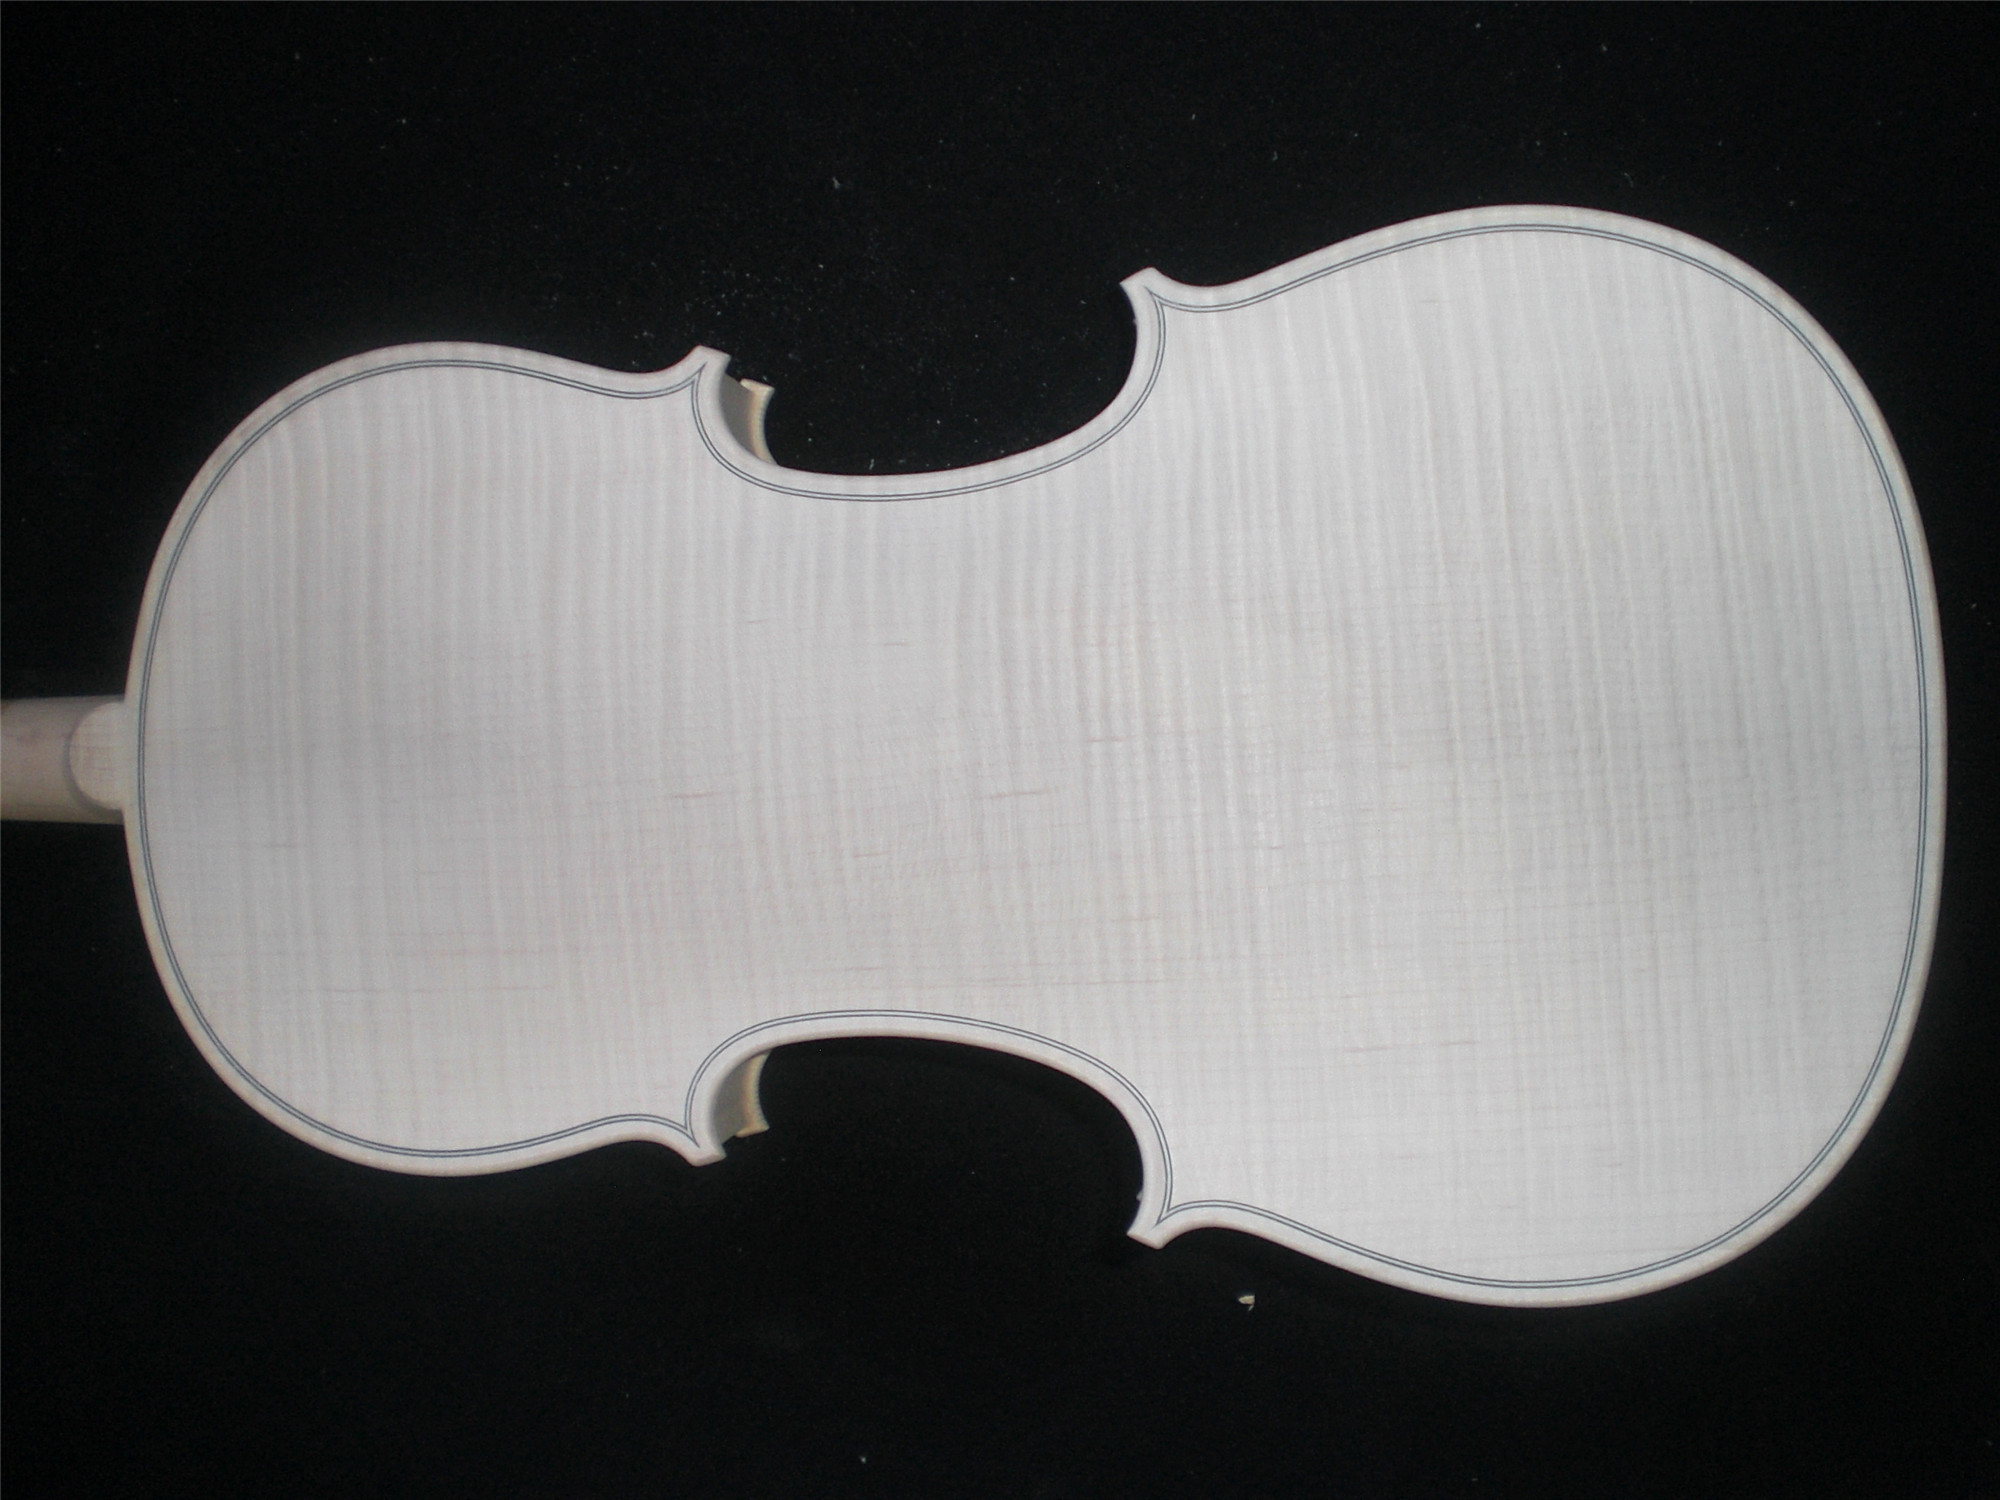 Whole Piece Maple Back Quality White Violin Unvarnished Ebony Fingerboard Spruce Top WH0506#Whole Piece Maple Back Quality White Violin Unvarnished Ebony Fingerboard Spruce Top WH0506#